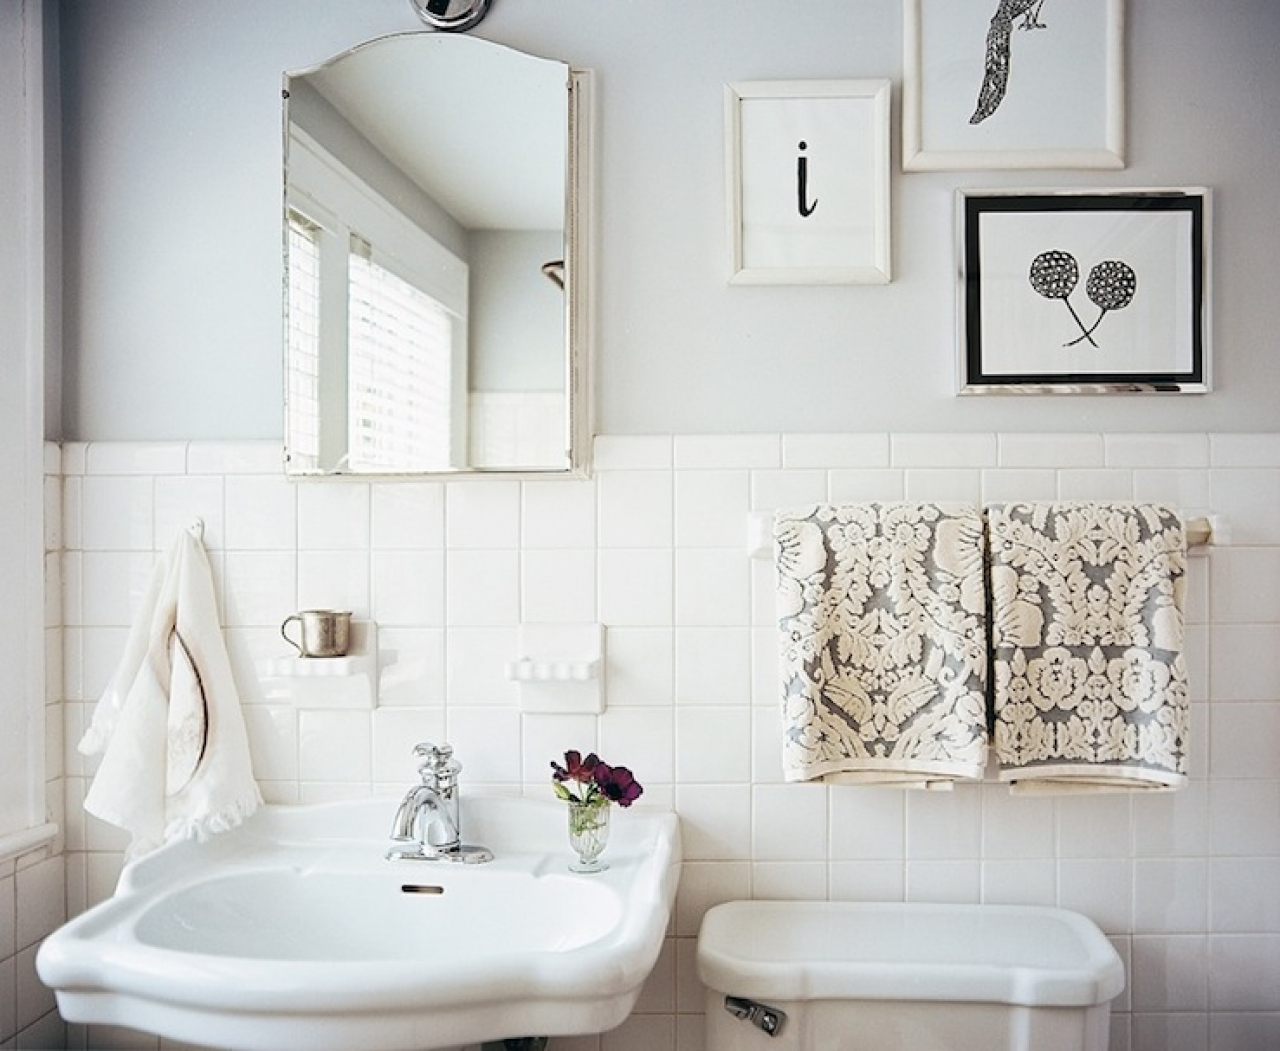 33 amazing pictures and ideas of old fashioned bathroom for Grey and white bathroom decor